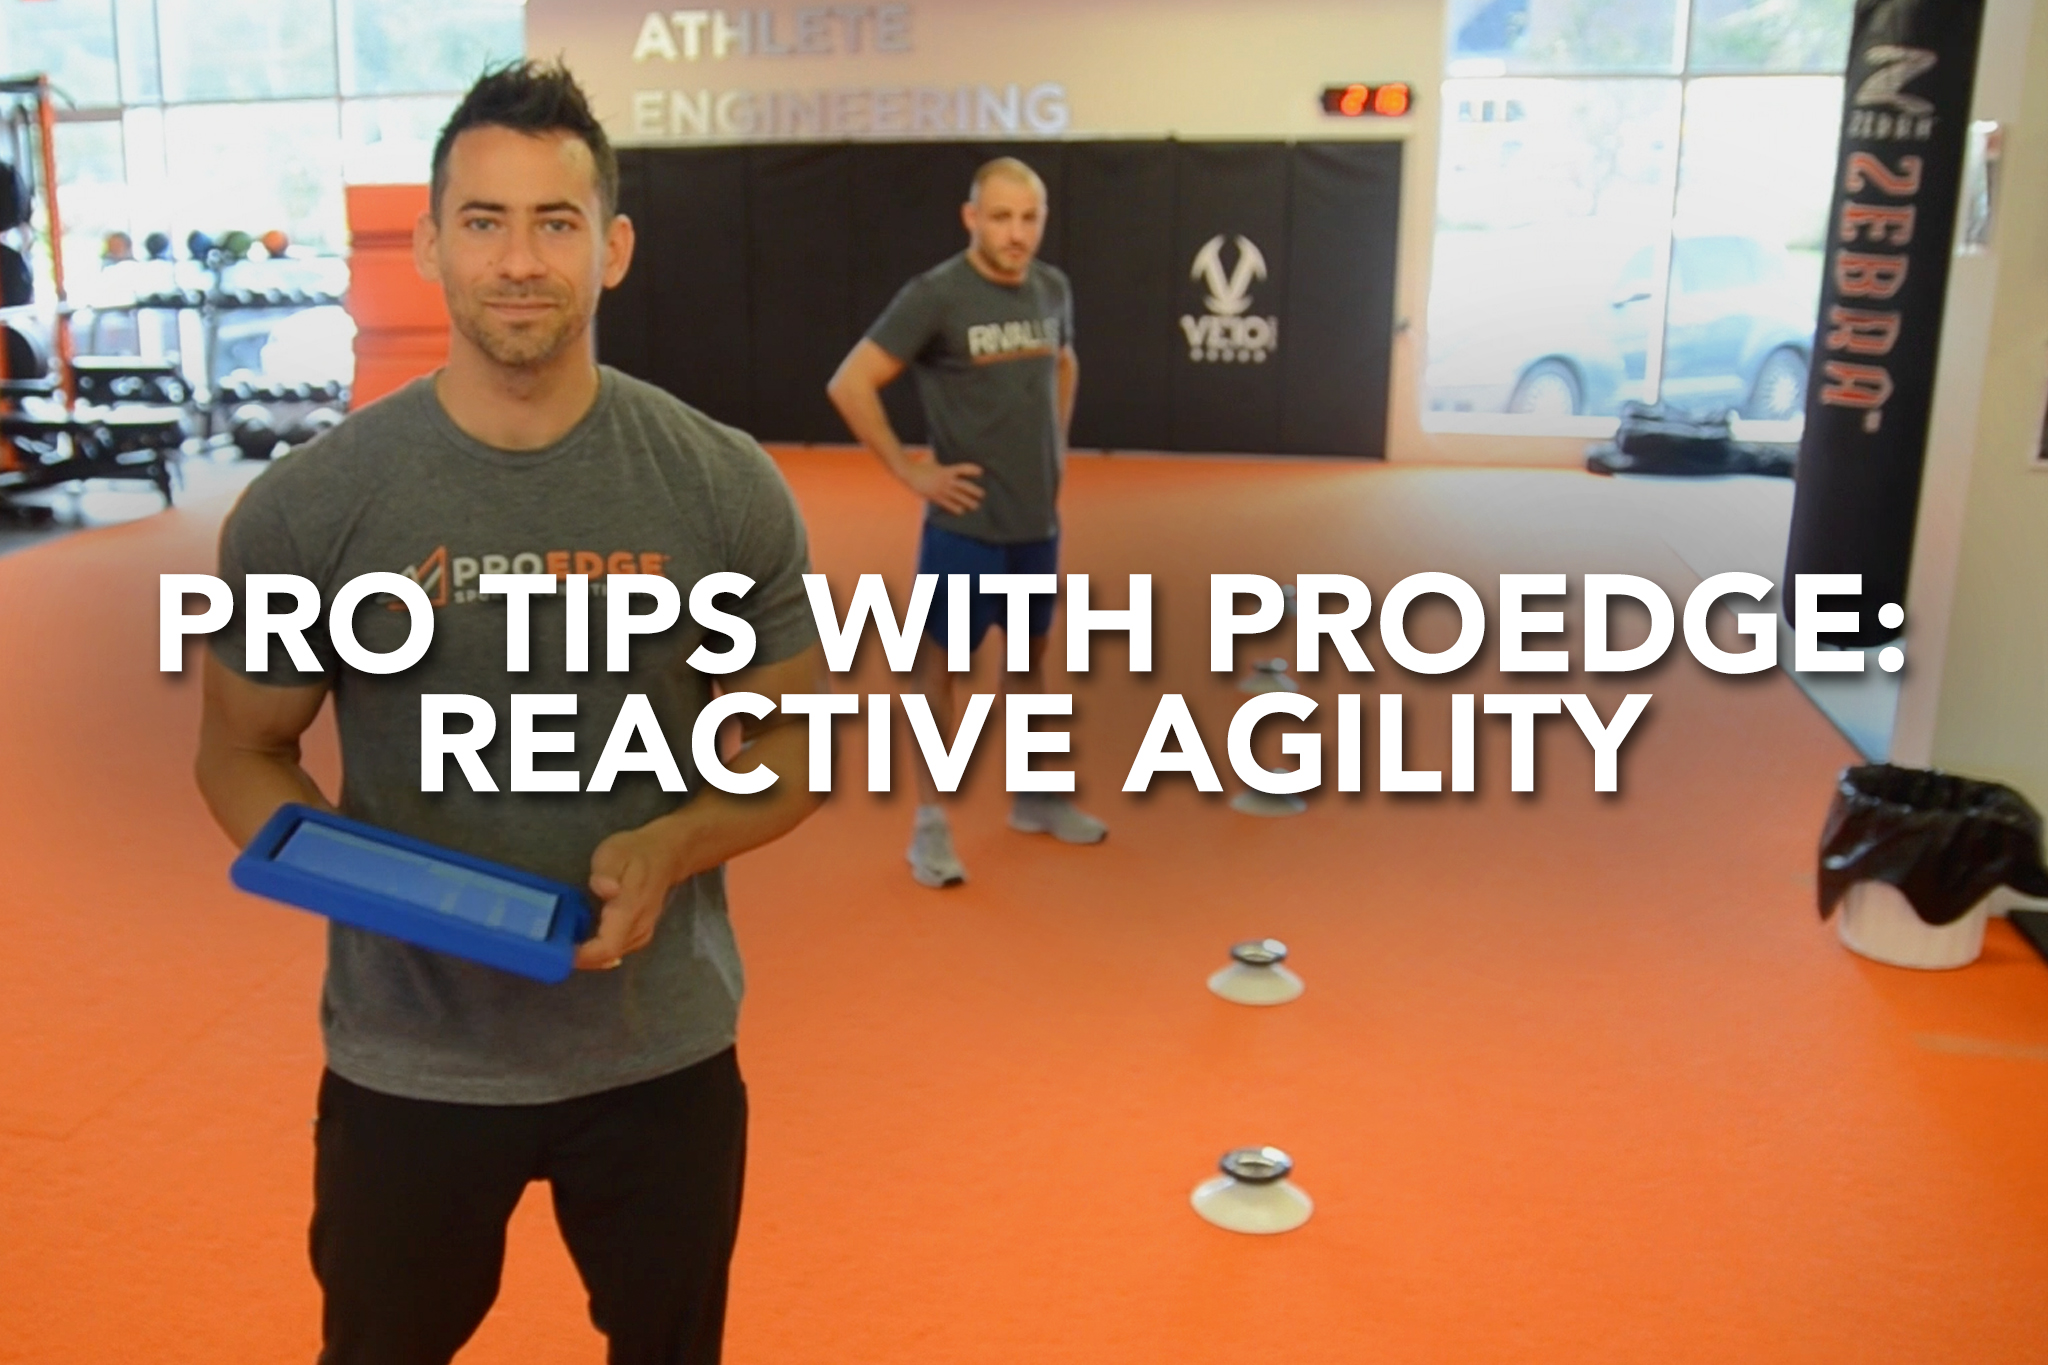 Pro Tips with ProEdge: Reactive Agility